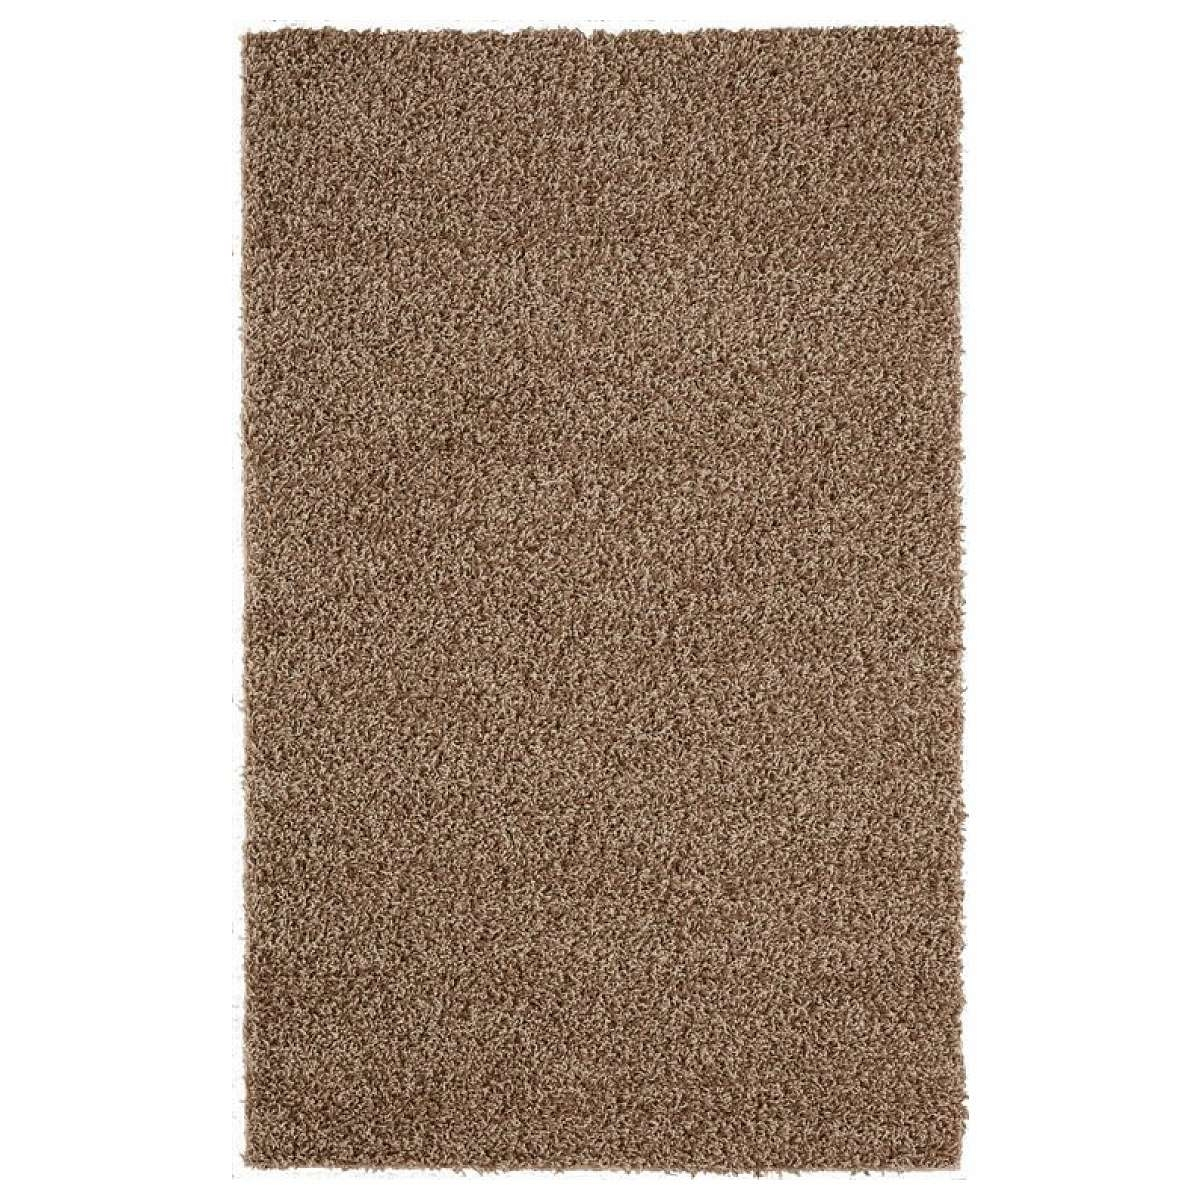 Custom Size Outdoor Rugs Outdoor Rugs Collections Marrakech With Regard To Custom Size Outdoor Rugs (Photo 10 of 15)